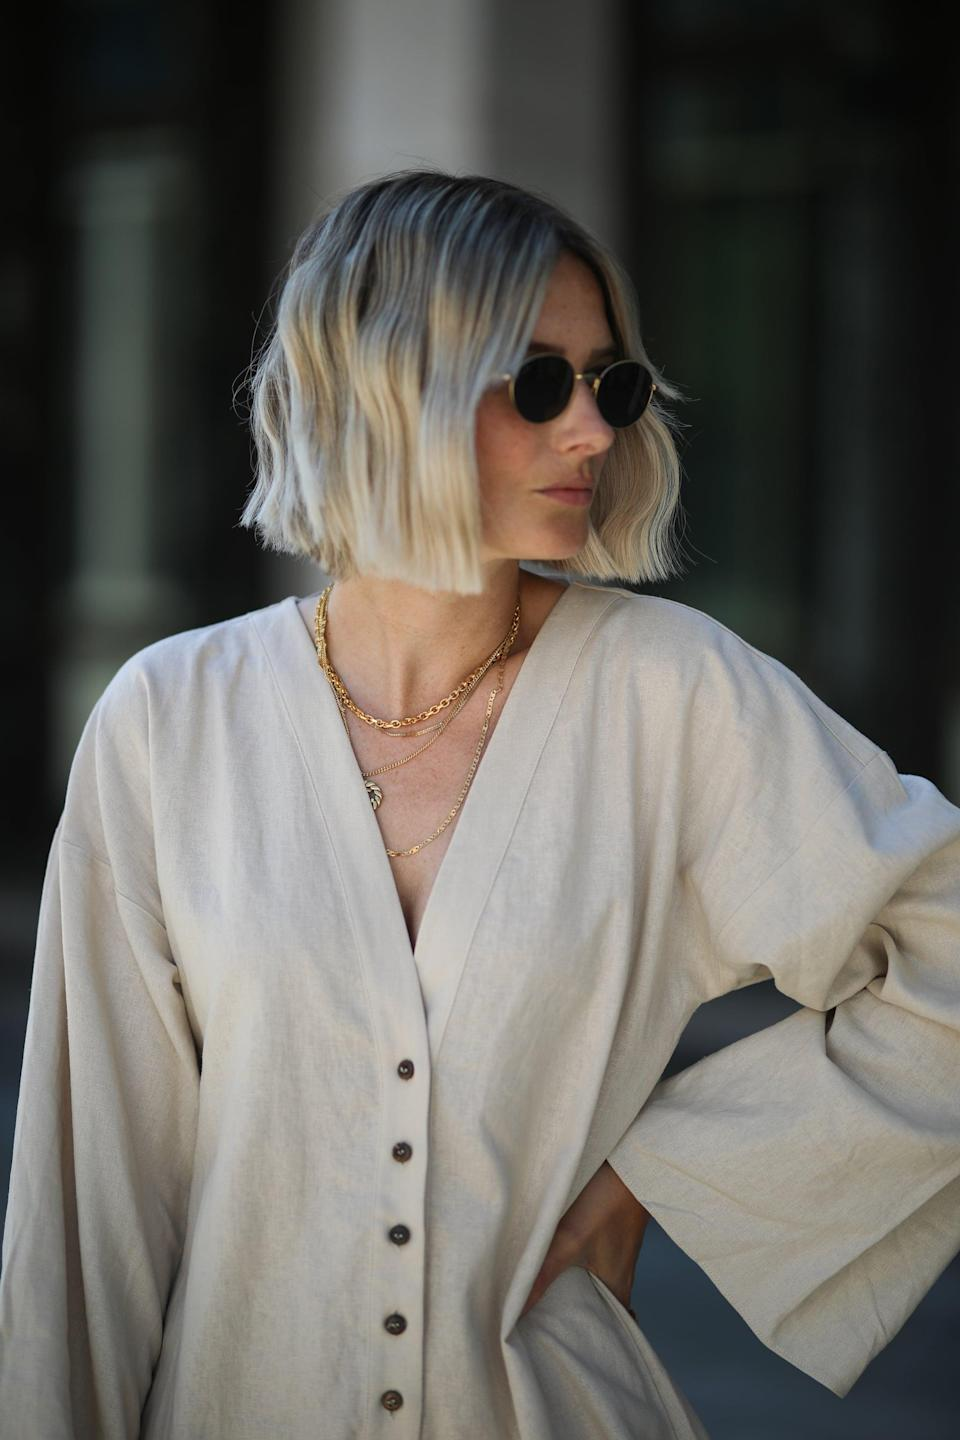 """<p>As a Capricorn, your key personality traits include being ambitious, but also practical and realistic. You need a haircut that looks natural and fits your down-to-earth beauty vibe, like a cut so subtle, you can barely see it. """"The <a href=""""https://www.popsugar.com/beauty/invisible-layers-haircut-technique-47759551"""" class=""""link rapid-noclick-resp"""" rel=""""nofollow noopener"""" target=""""_blank"""" data-ylk=""""slk:term 'invisible layers'"""">term 'invisible layers'</a> refers to removing weight and <a href=""""https://www.popsugar.com/beauty/haircut-trends-2020-47003144"""" class=""""link rapid-noclick-resp"""" rel=""""nofollow noopener"""" target=""""_blank"""" data-ylk=""""slk:adding movement into a haircut"""">adding movement into a haircut</a> while creating a finished look with minimal or no layers at all,"""" <a href=""""https://www.instagram.com/omarantoniosebastian/"""" class=""""link rapid-noclick-resp"""" rel=""""nofollow noopener"""" target=""""_blank"""" data-ylk=""""slk:Omar Antonio"""">Omar Antonio</a>, hairstylist and global top artist for Sebastian Professional, told POPSUGAR.</p>"""